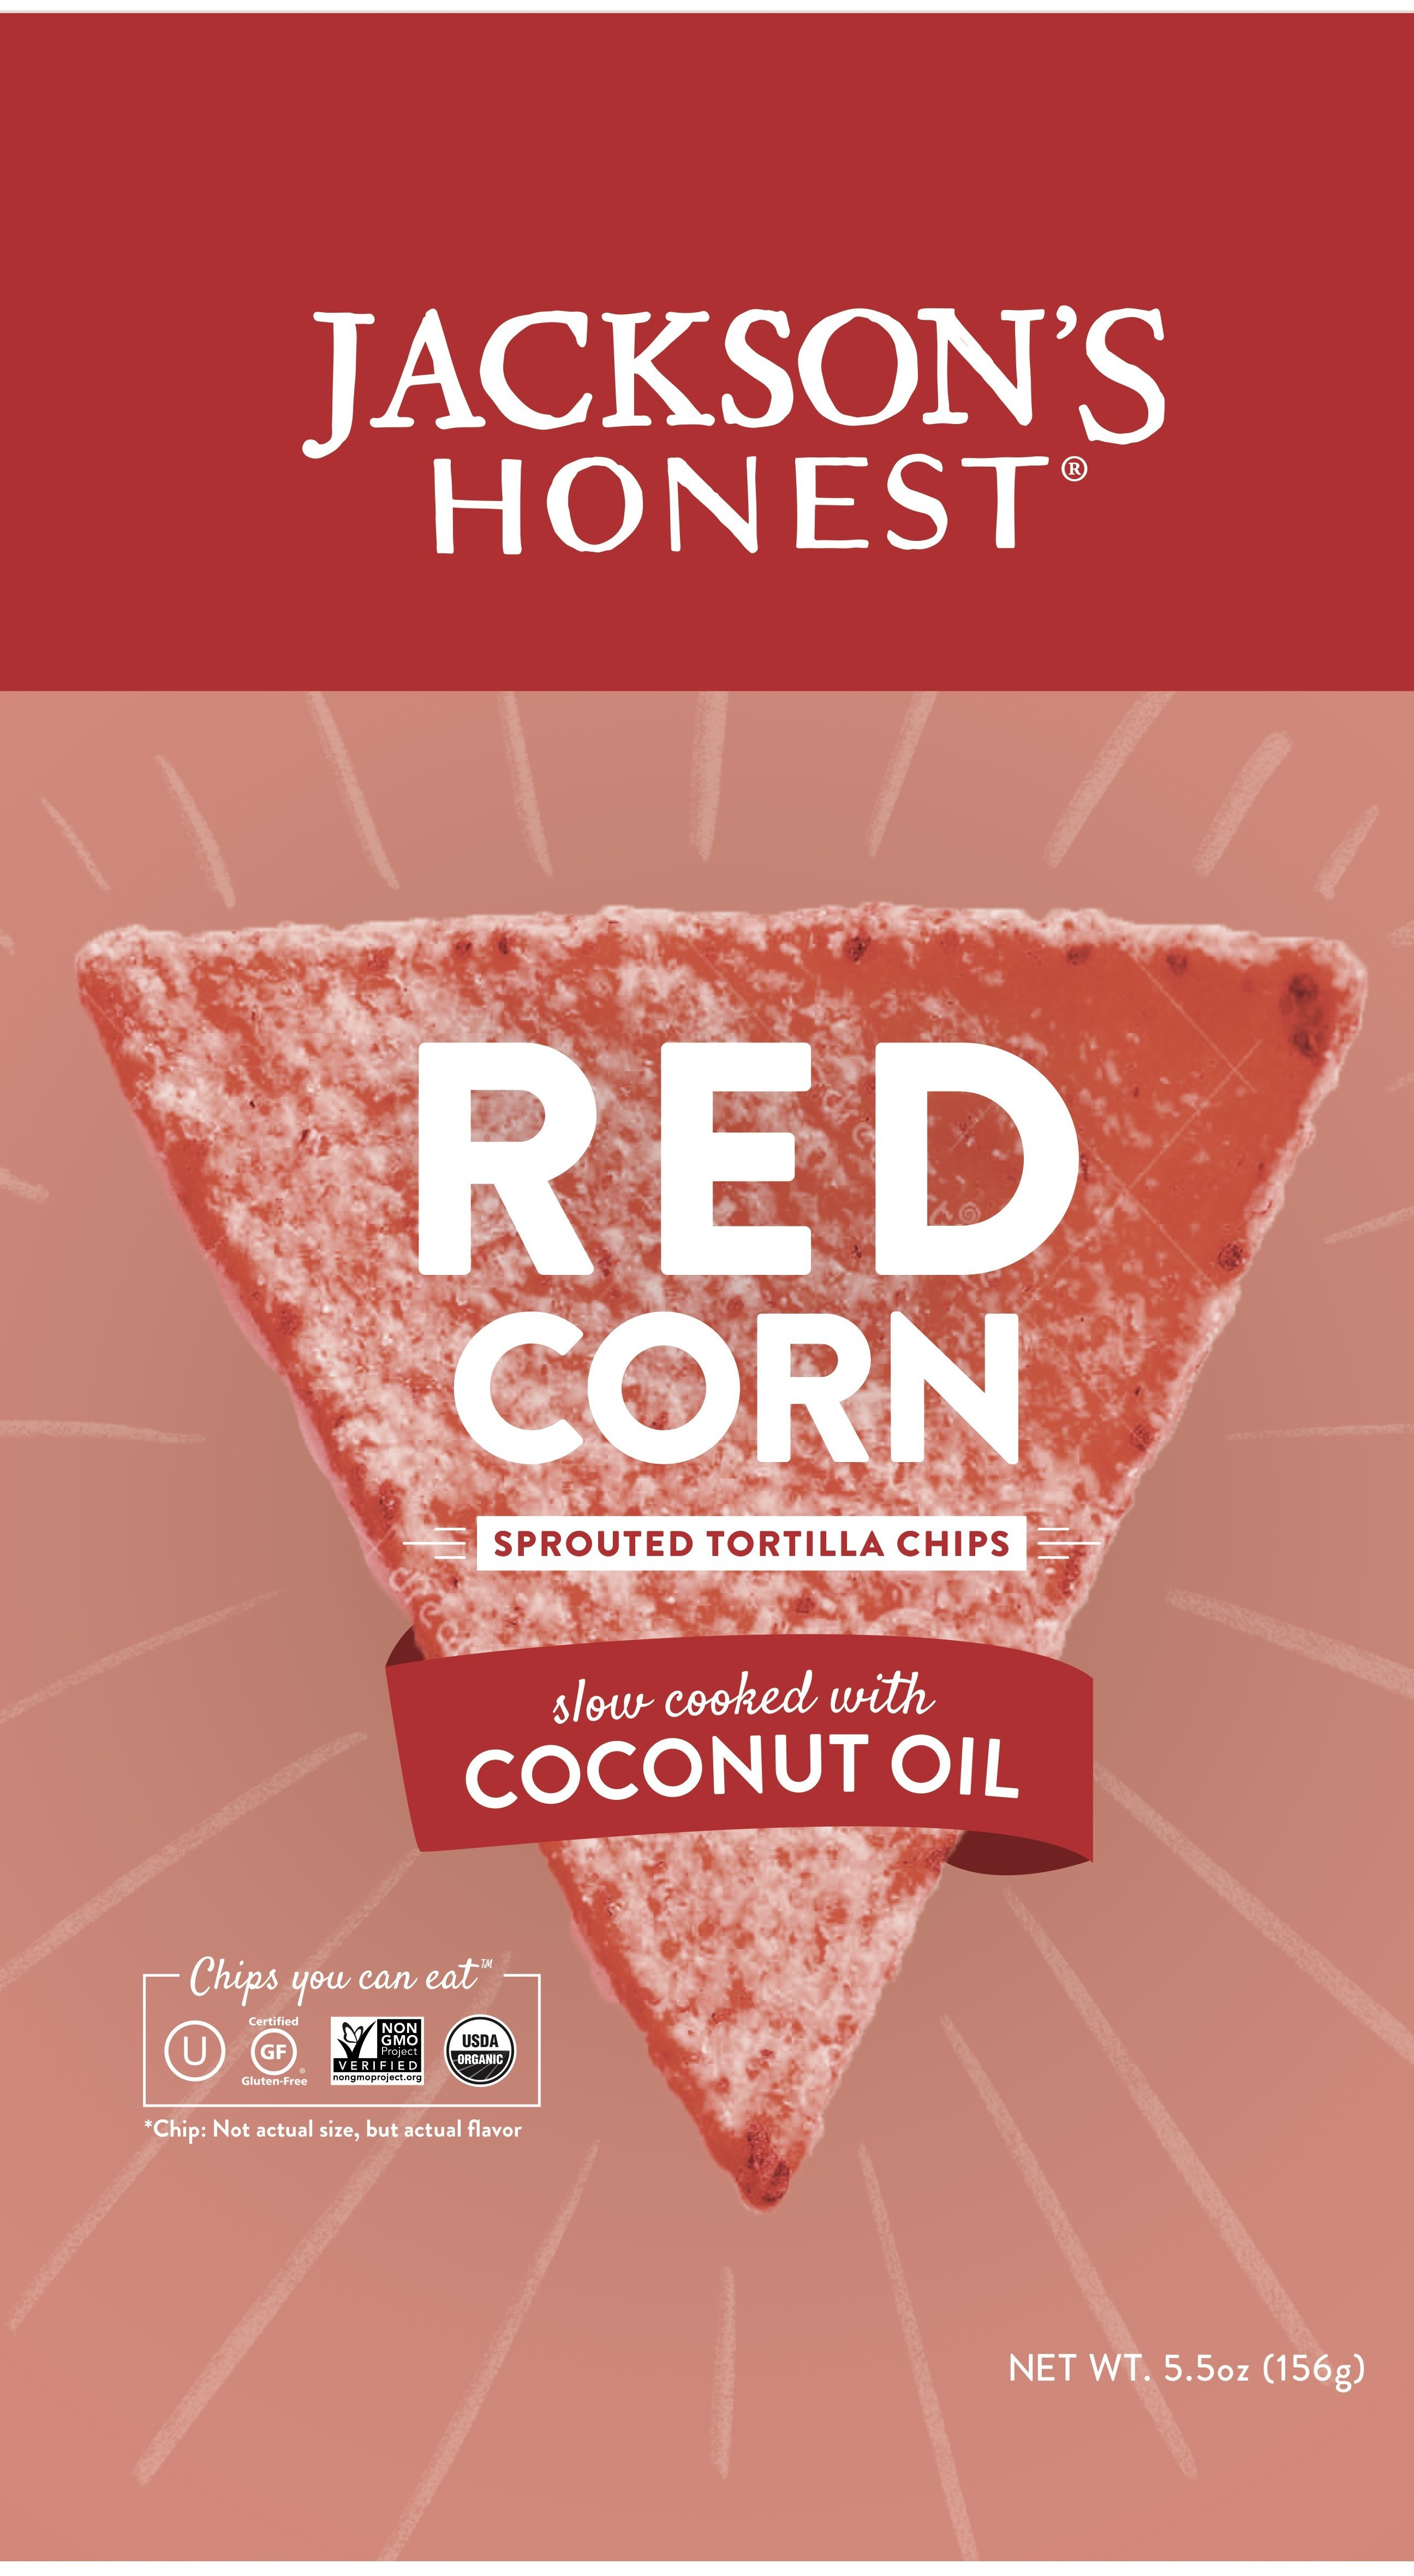 Red Corn Sprouted Tortilla Chips | The Natural Products Brands Directory